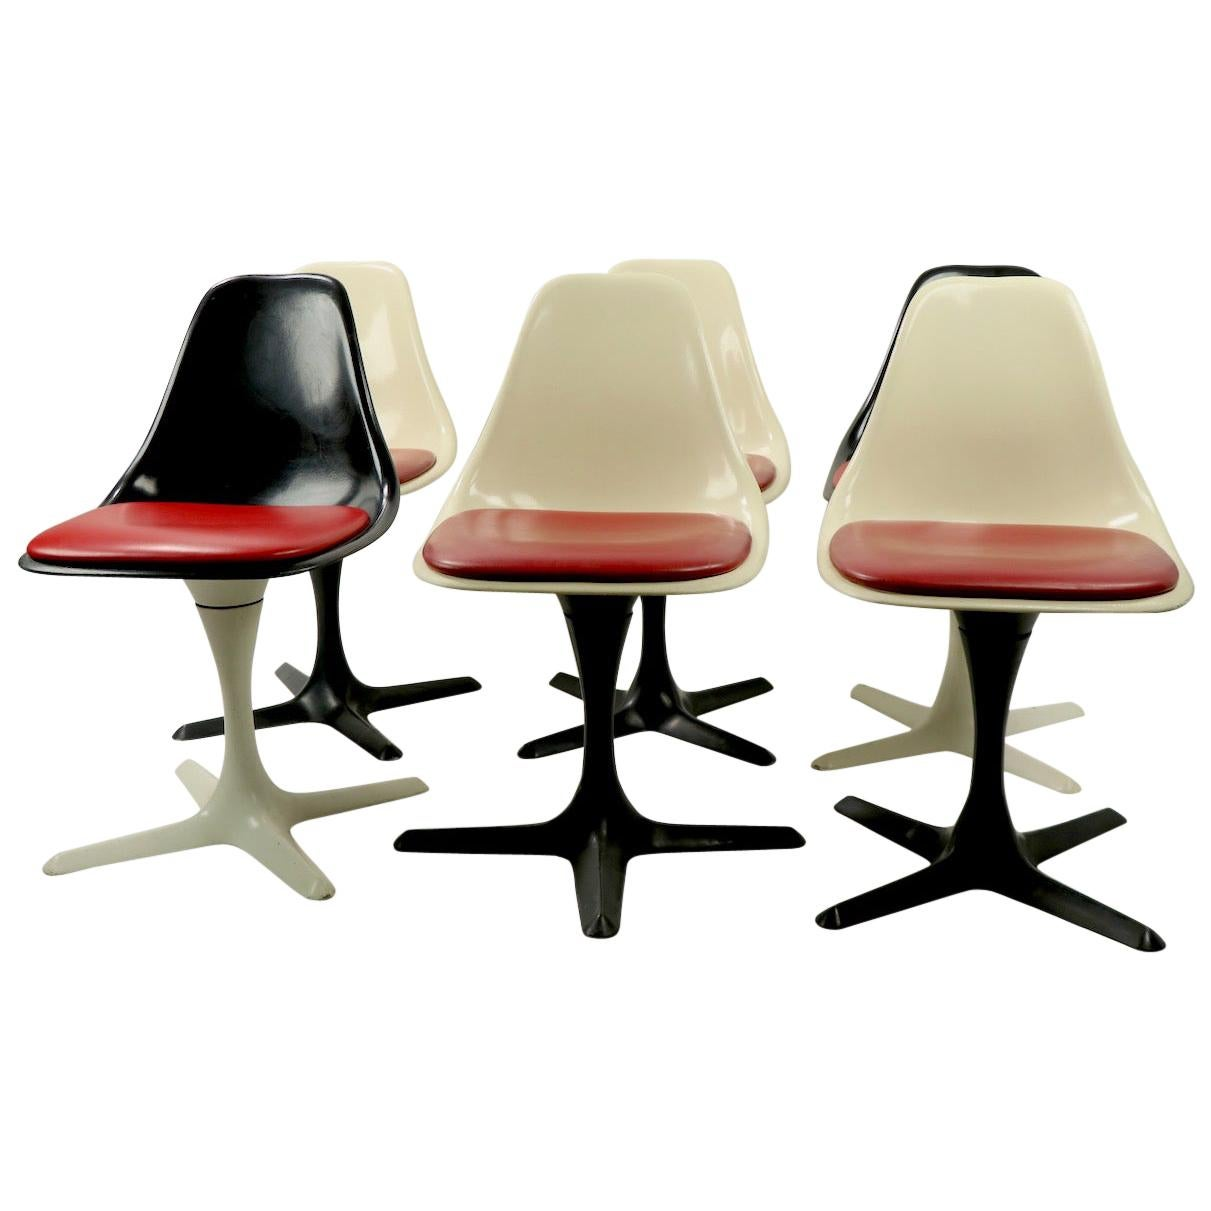 Set of 6 Tulip Chairs by Burke